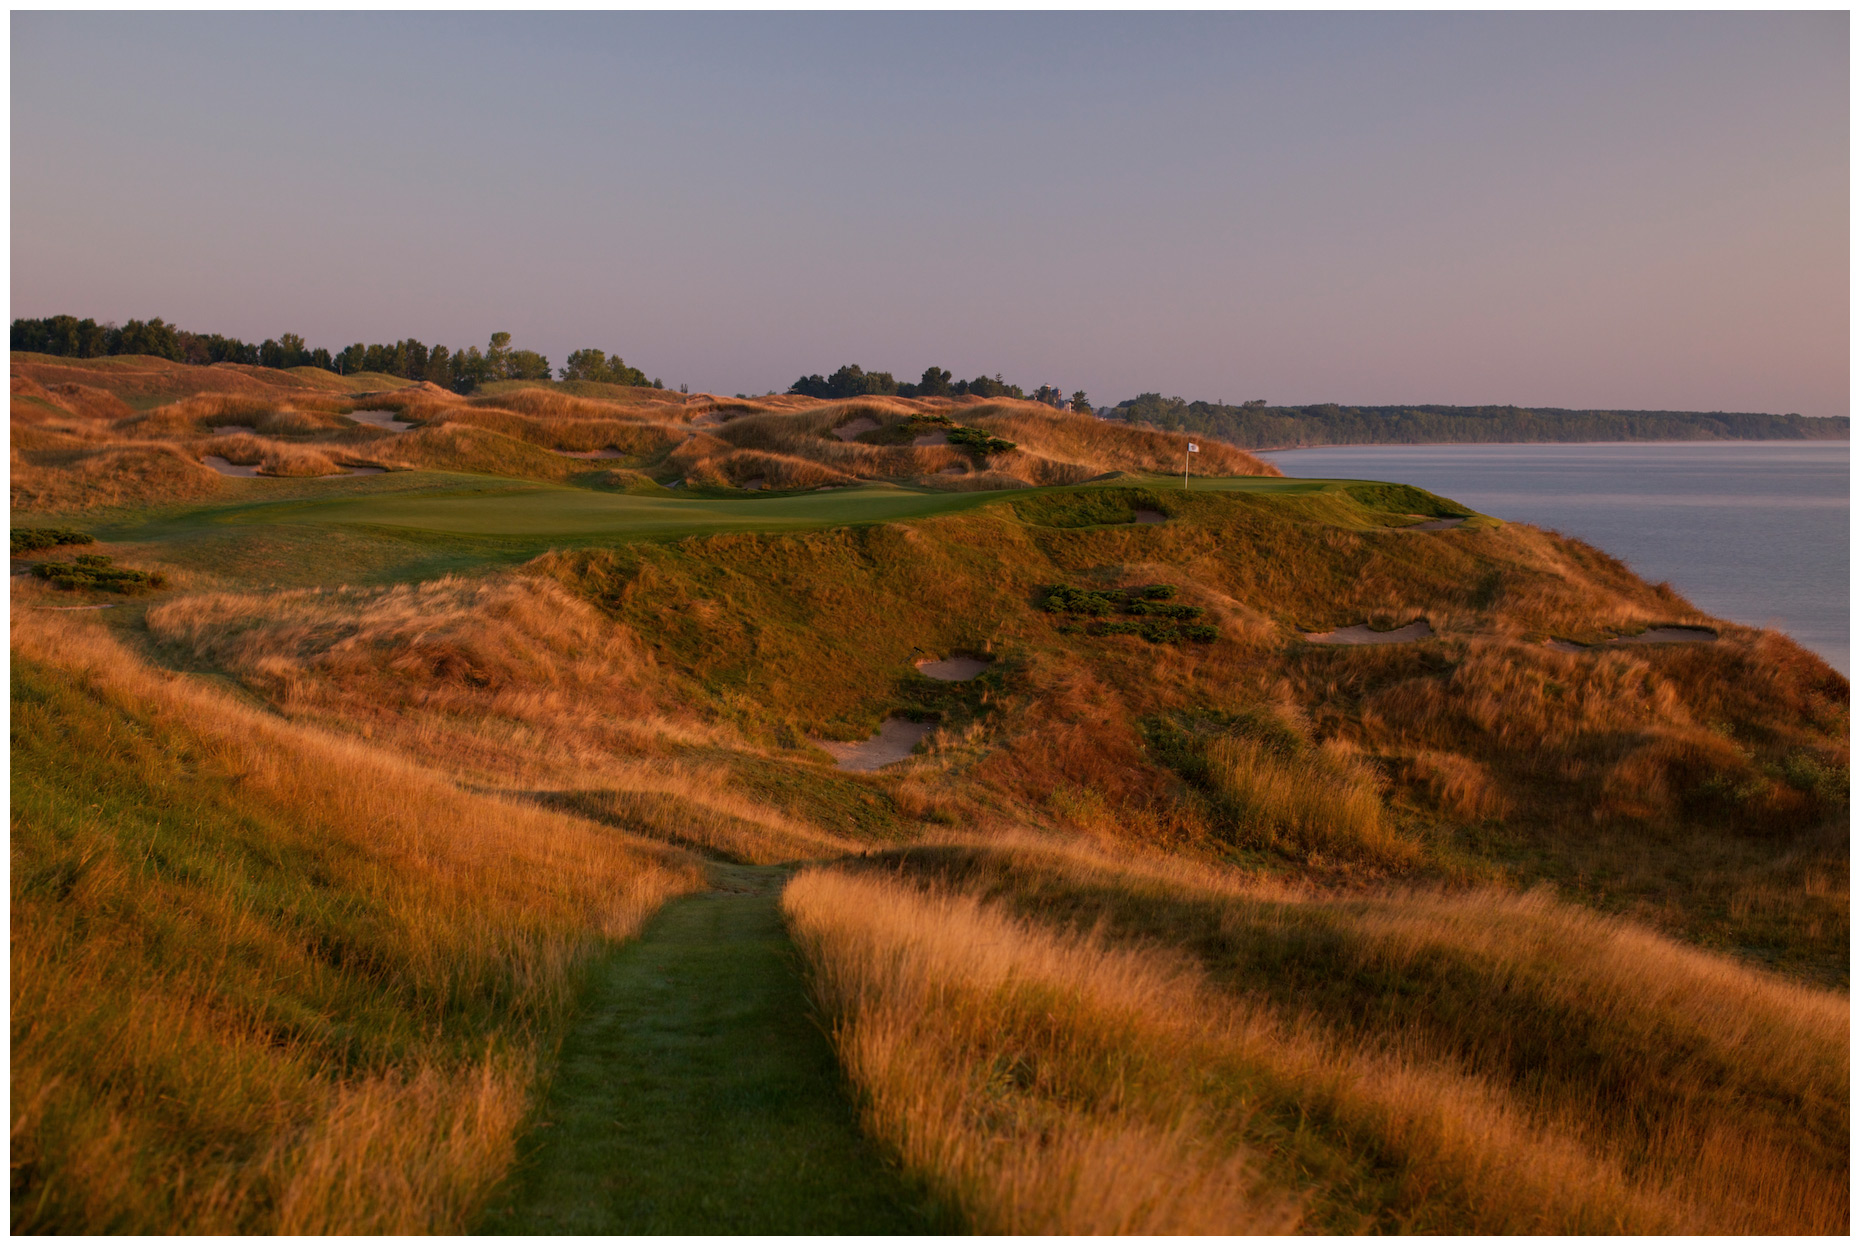 Whistling Straits near Kohler, Wisconsin. Photographed for Golf Digest.